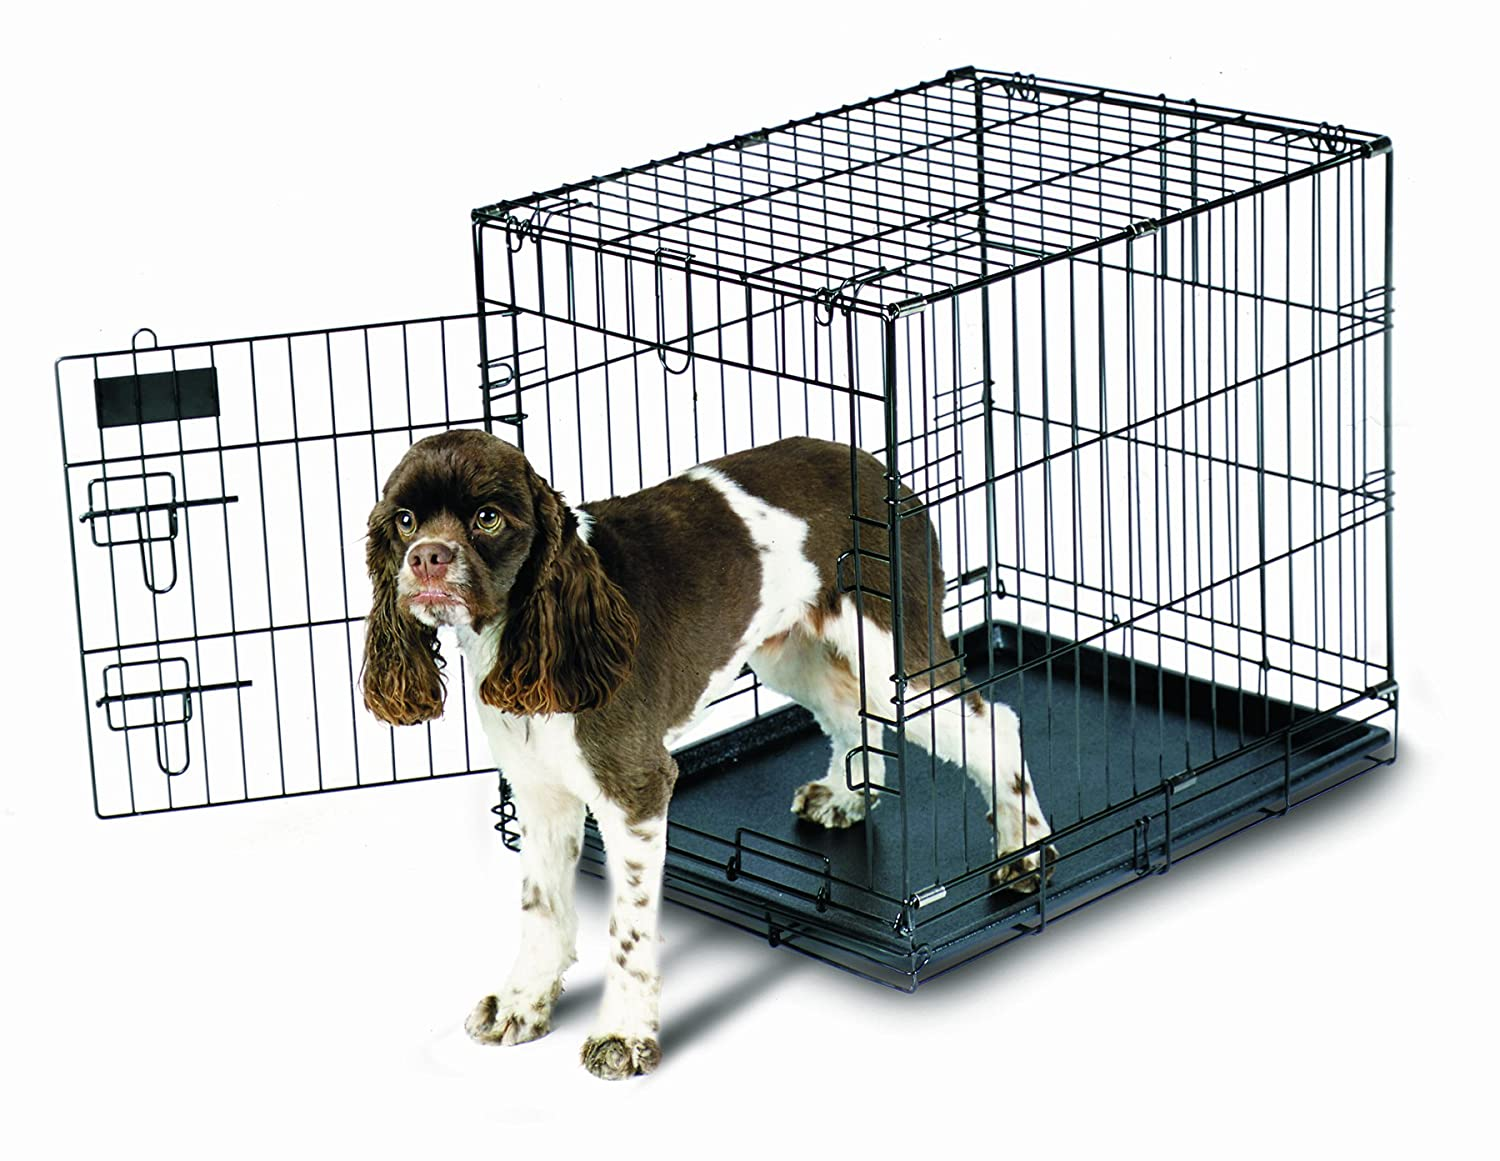 24x18x21\ Aspen Pet Home Training Wire Crate, Black 24x18x21